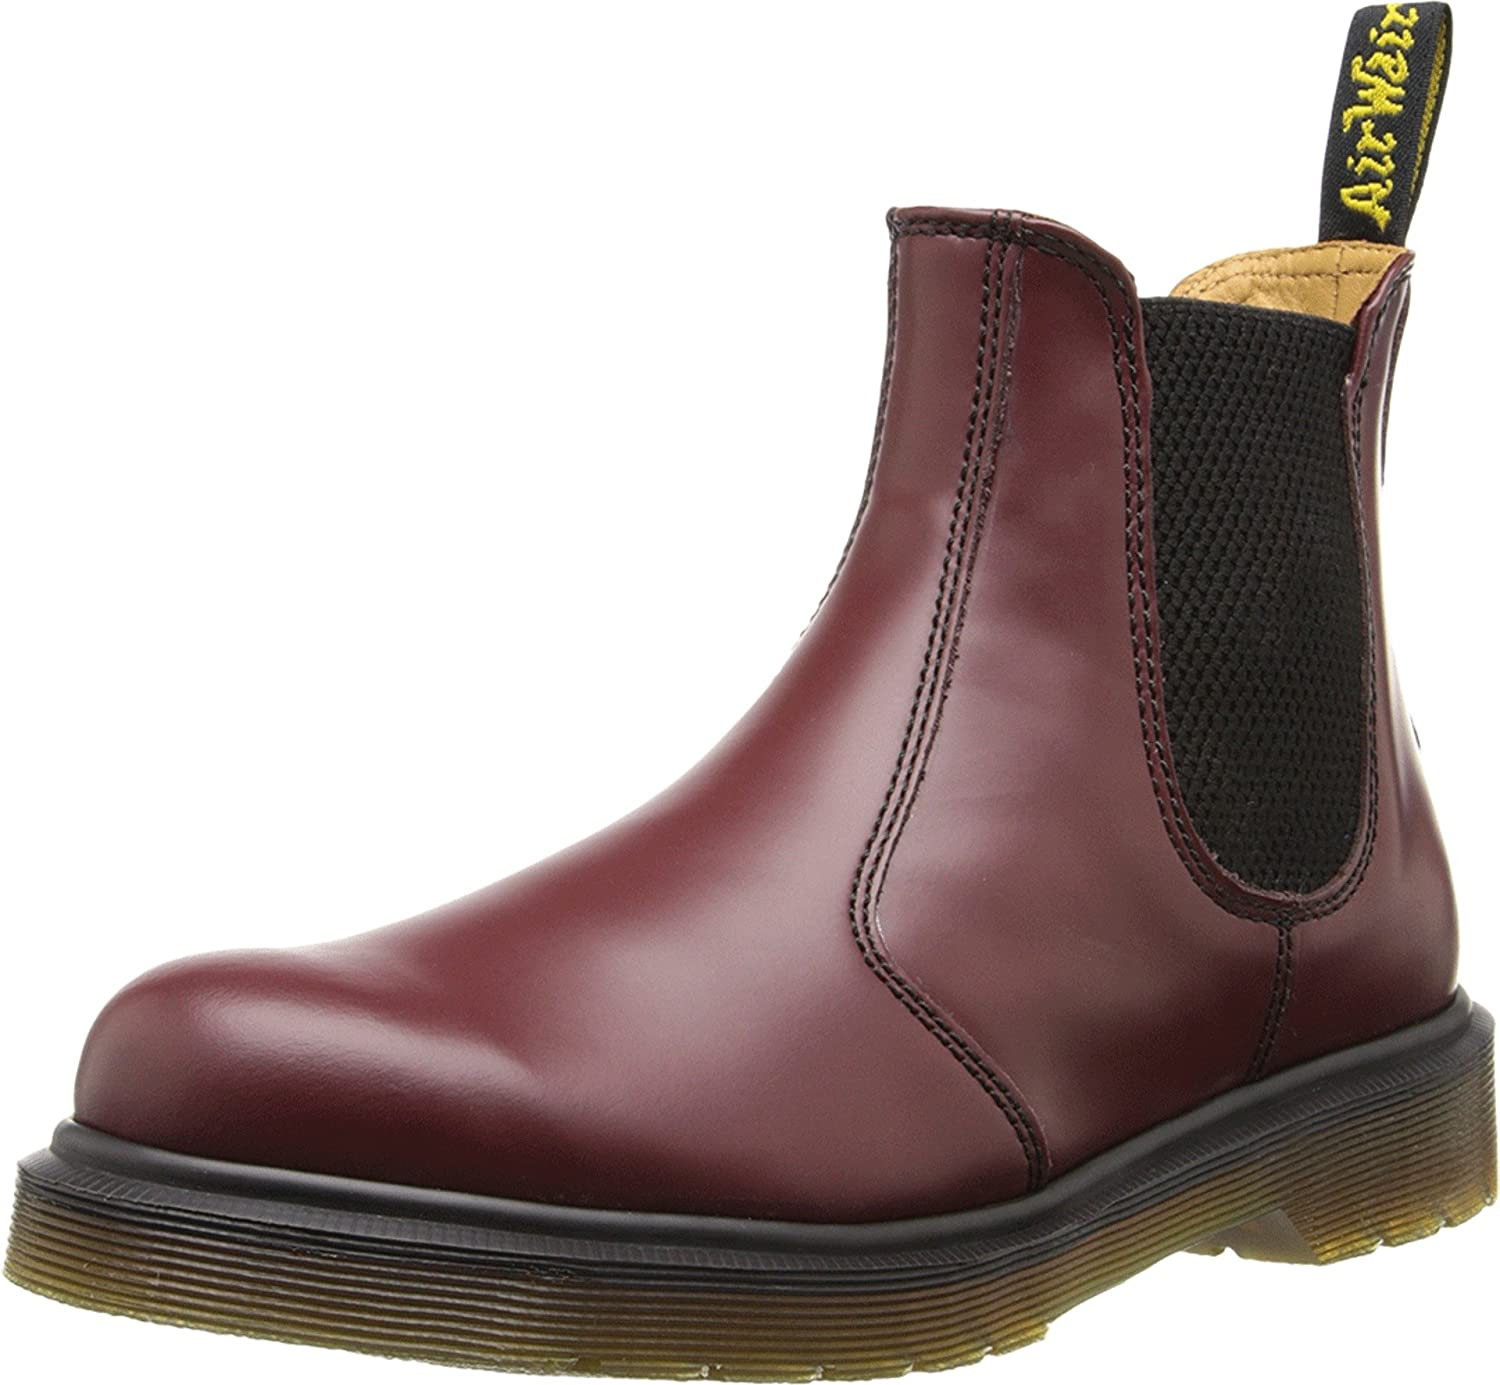 Dr. Martens, 2976 Leather Chelsea Boot